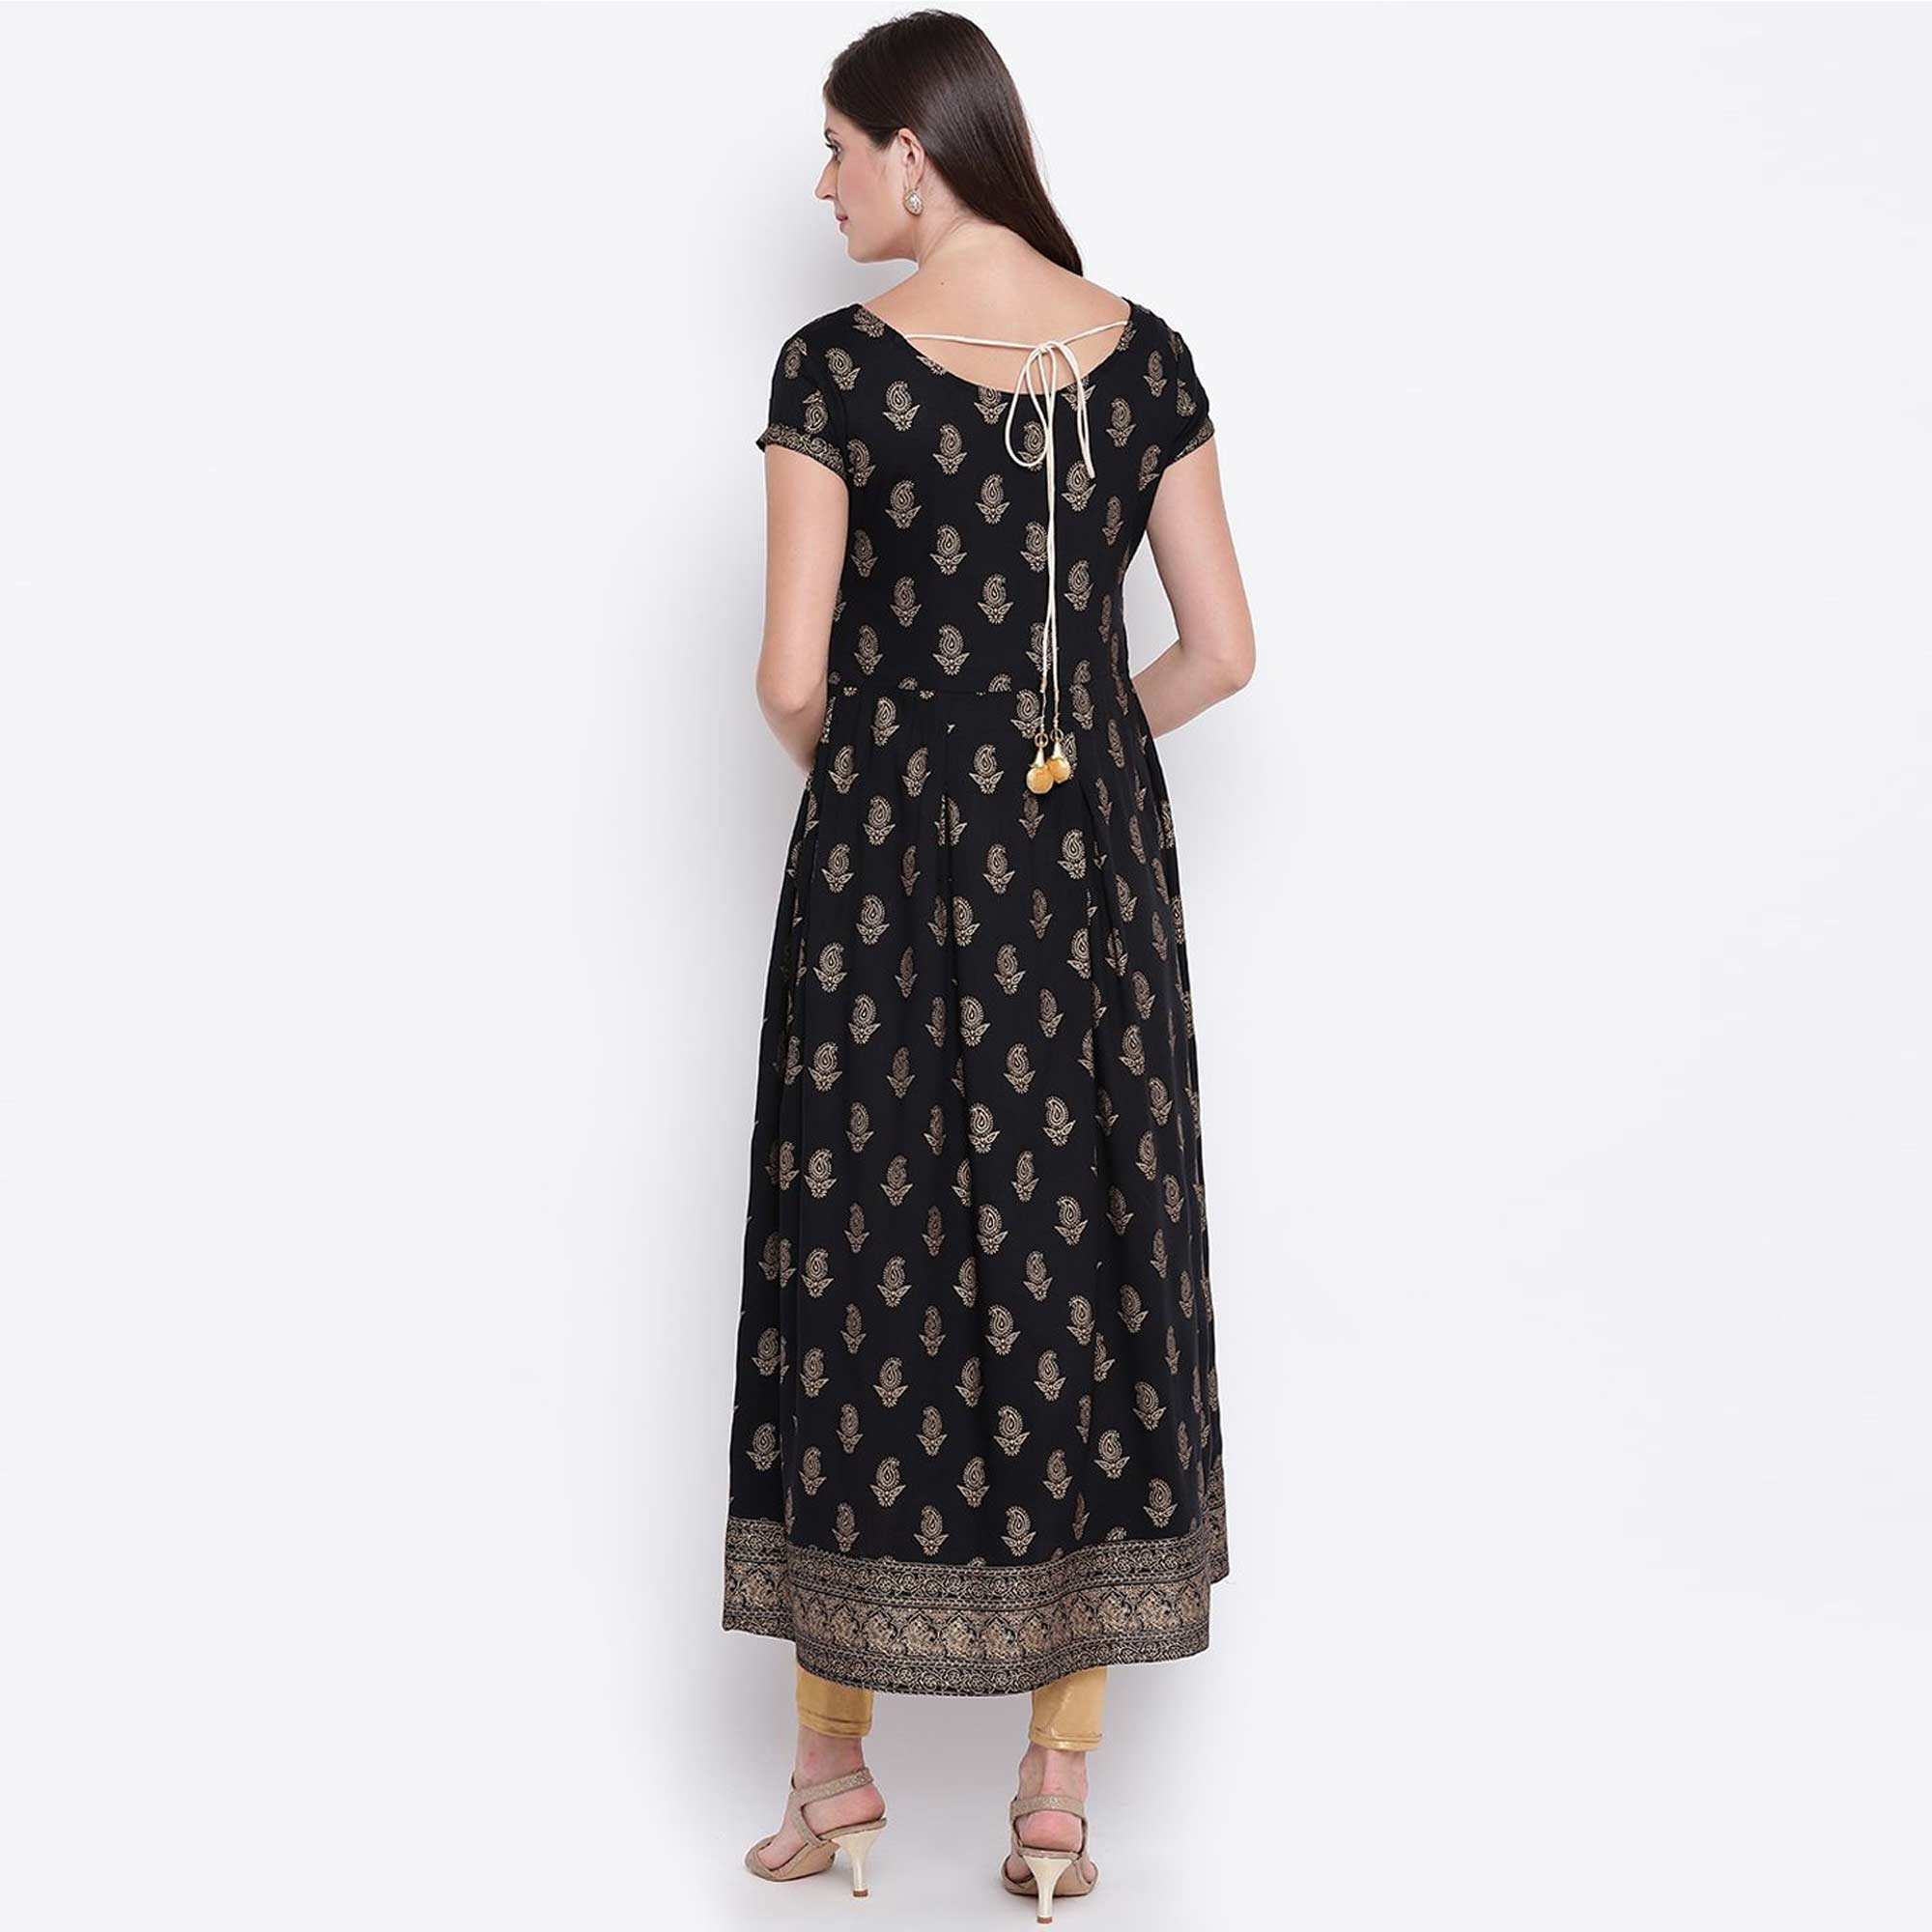 Exceptional Black Colored Party Wear Foil Printed Rayon Kurti